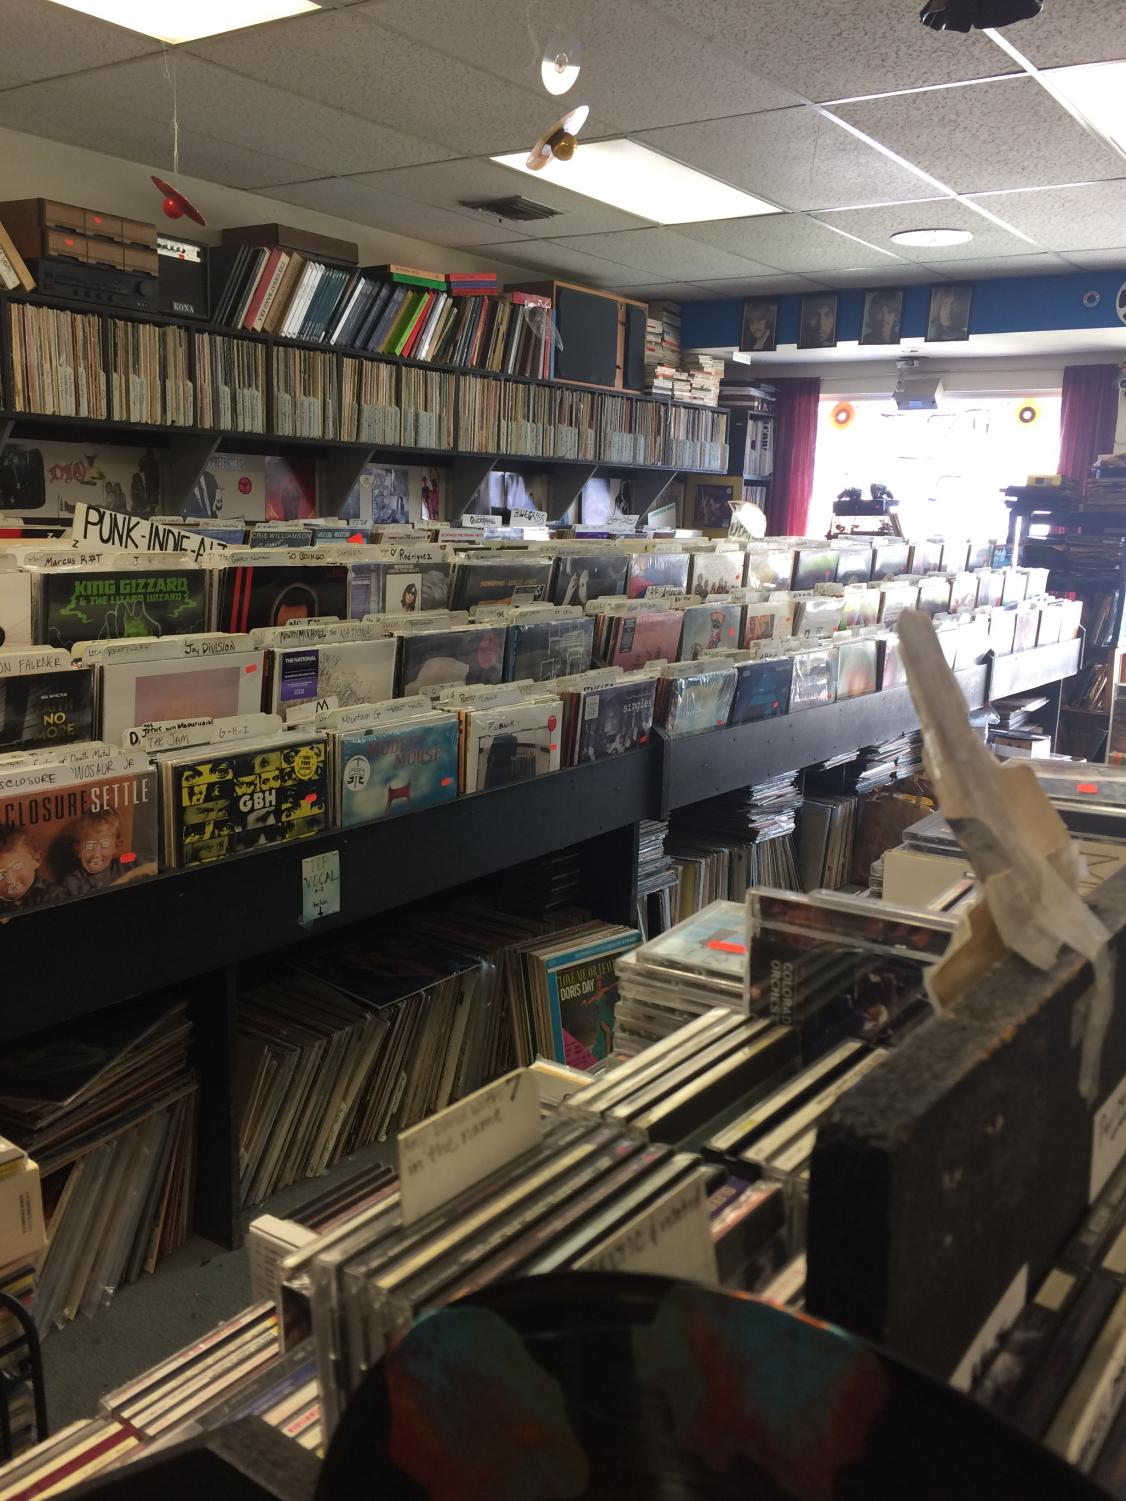 Inside of the Record Store